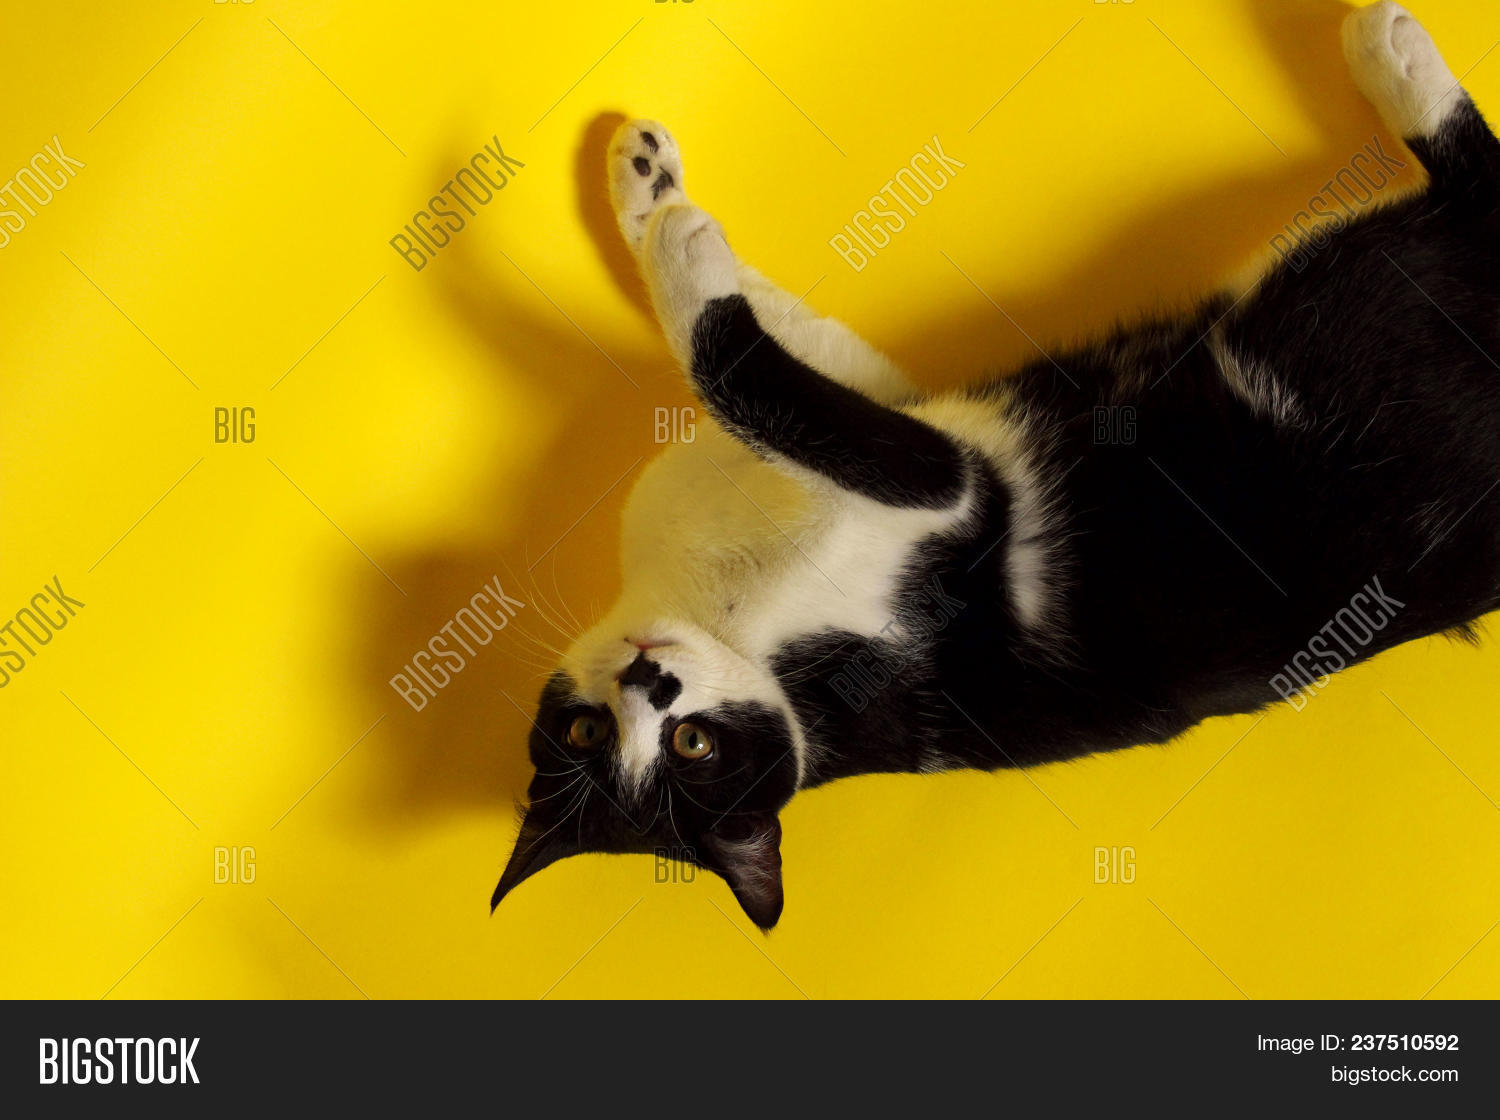 Black Cat On Yellow Image Photo Free Trial Bigstock